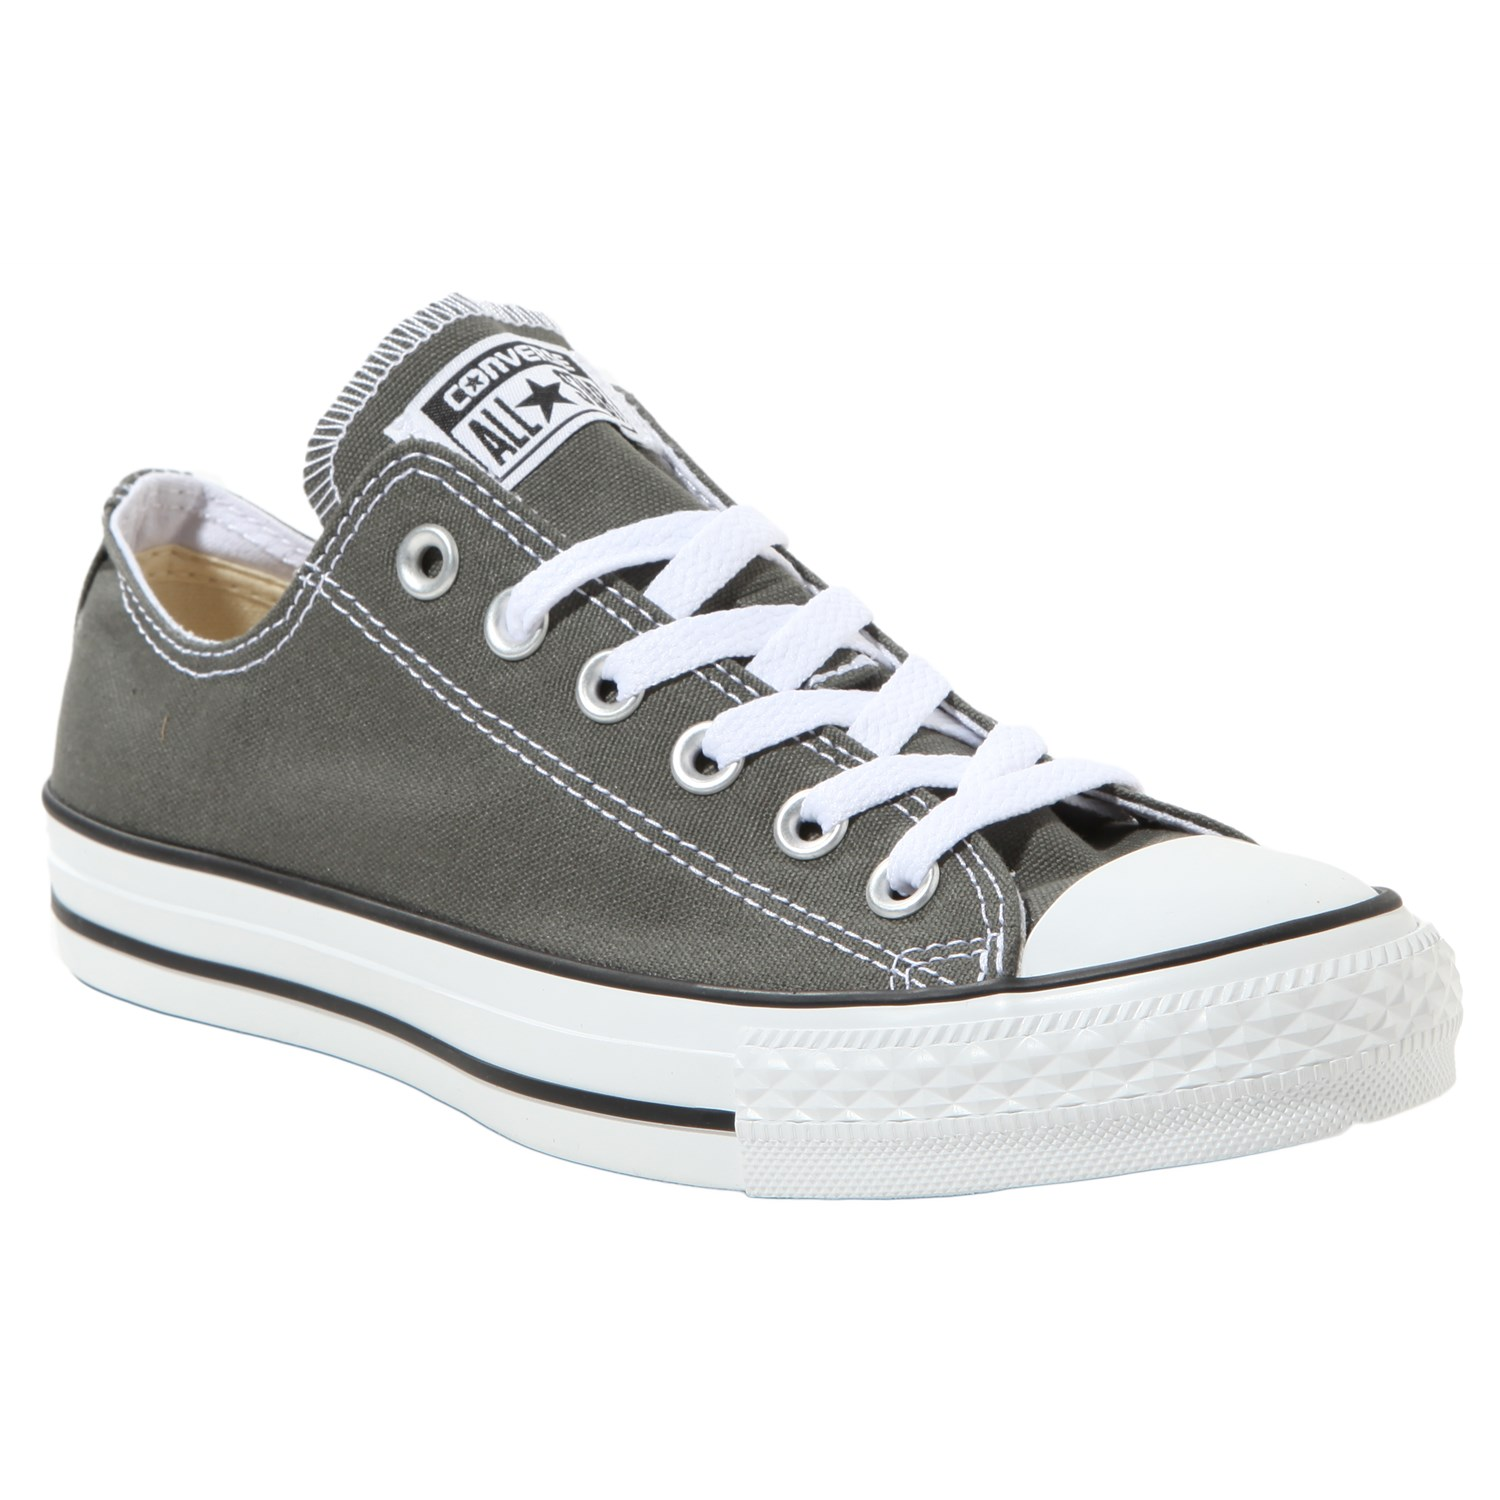 All Stars Shoes Converse Chuck Taylor All Star Low Shoes Women